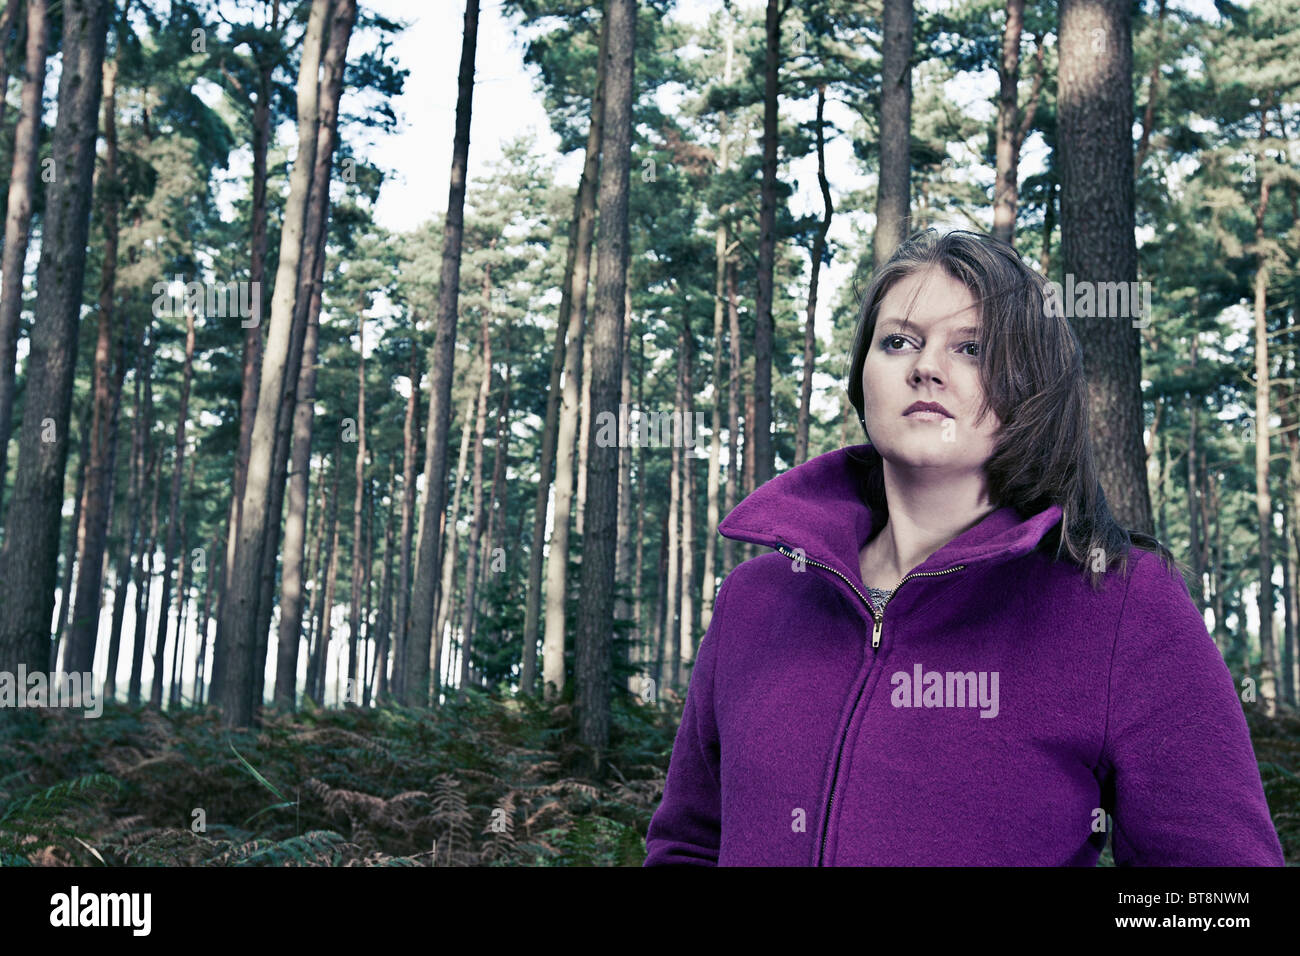 Shot of a Woman in Purple Coat in Forest - Stock Image